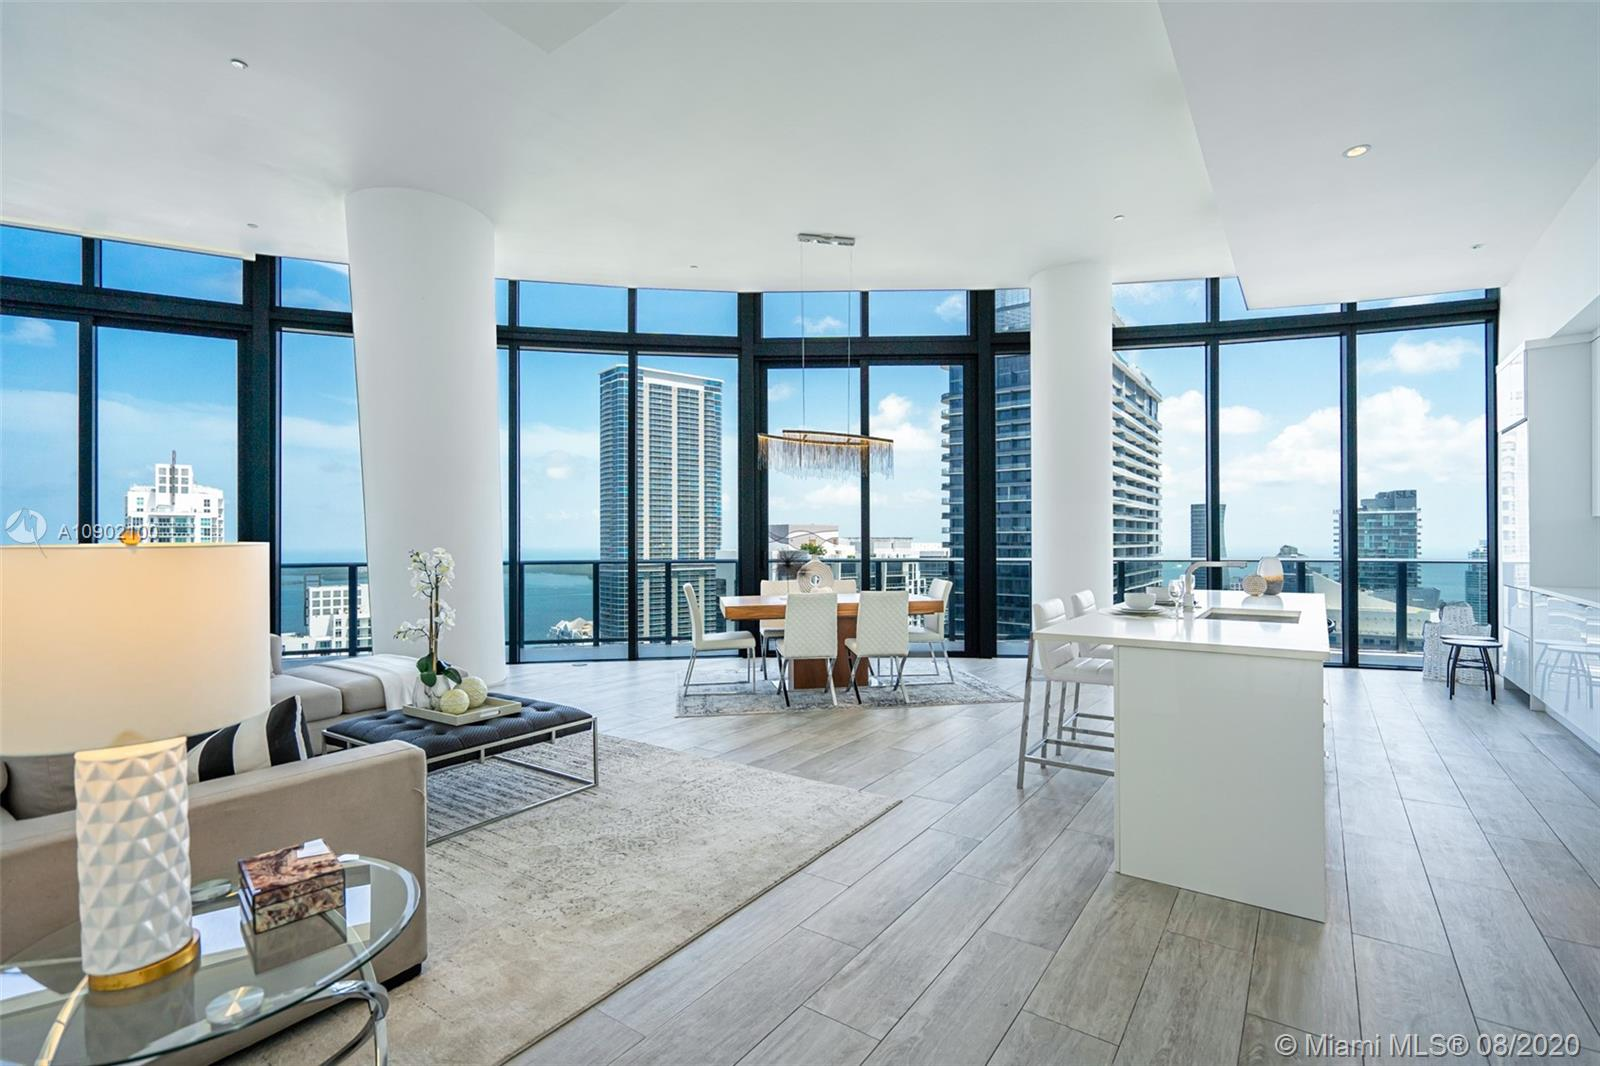 Sleek and modern penthouse unit that delivers 5 star resort style living. Spectacular view of the city and Biscayne Bay from the wrap around balcony. The unit is 3 bedrooms, 4 baths with a den and is 2,228 square feet. The kitchen has all top of the line appliances including a sub-zero fridge.  Brickell Heights is the place to be in this up and coming neighborhood! Offering 24/7 valet service, 2 parking spaces, a rooftop Sky Deck Pool, an engaging kids club with activities, Equinox Fitness Club & Spa along with Soul Cycle cycling studio is on the first floor. Conveniently located within walking distance of shopping.